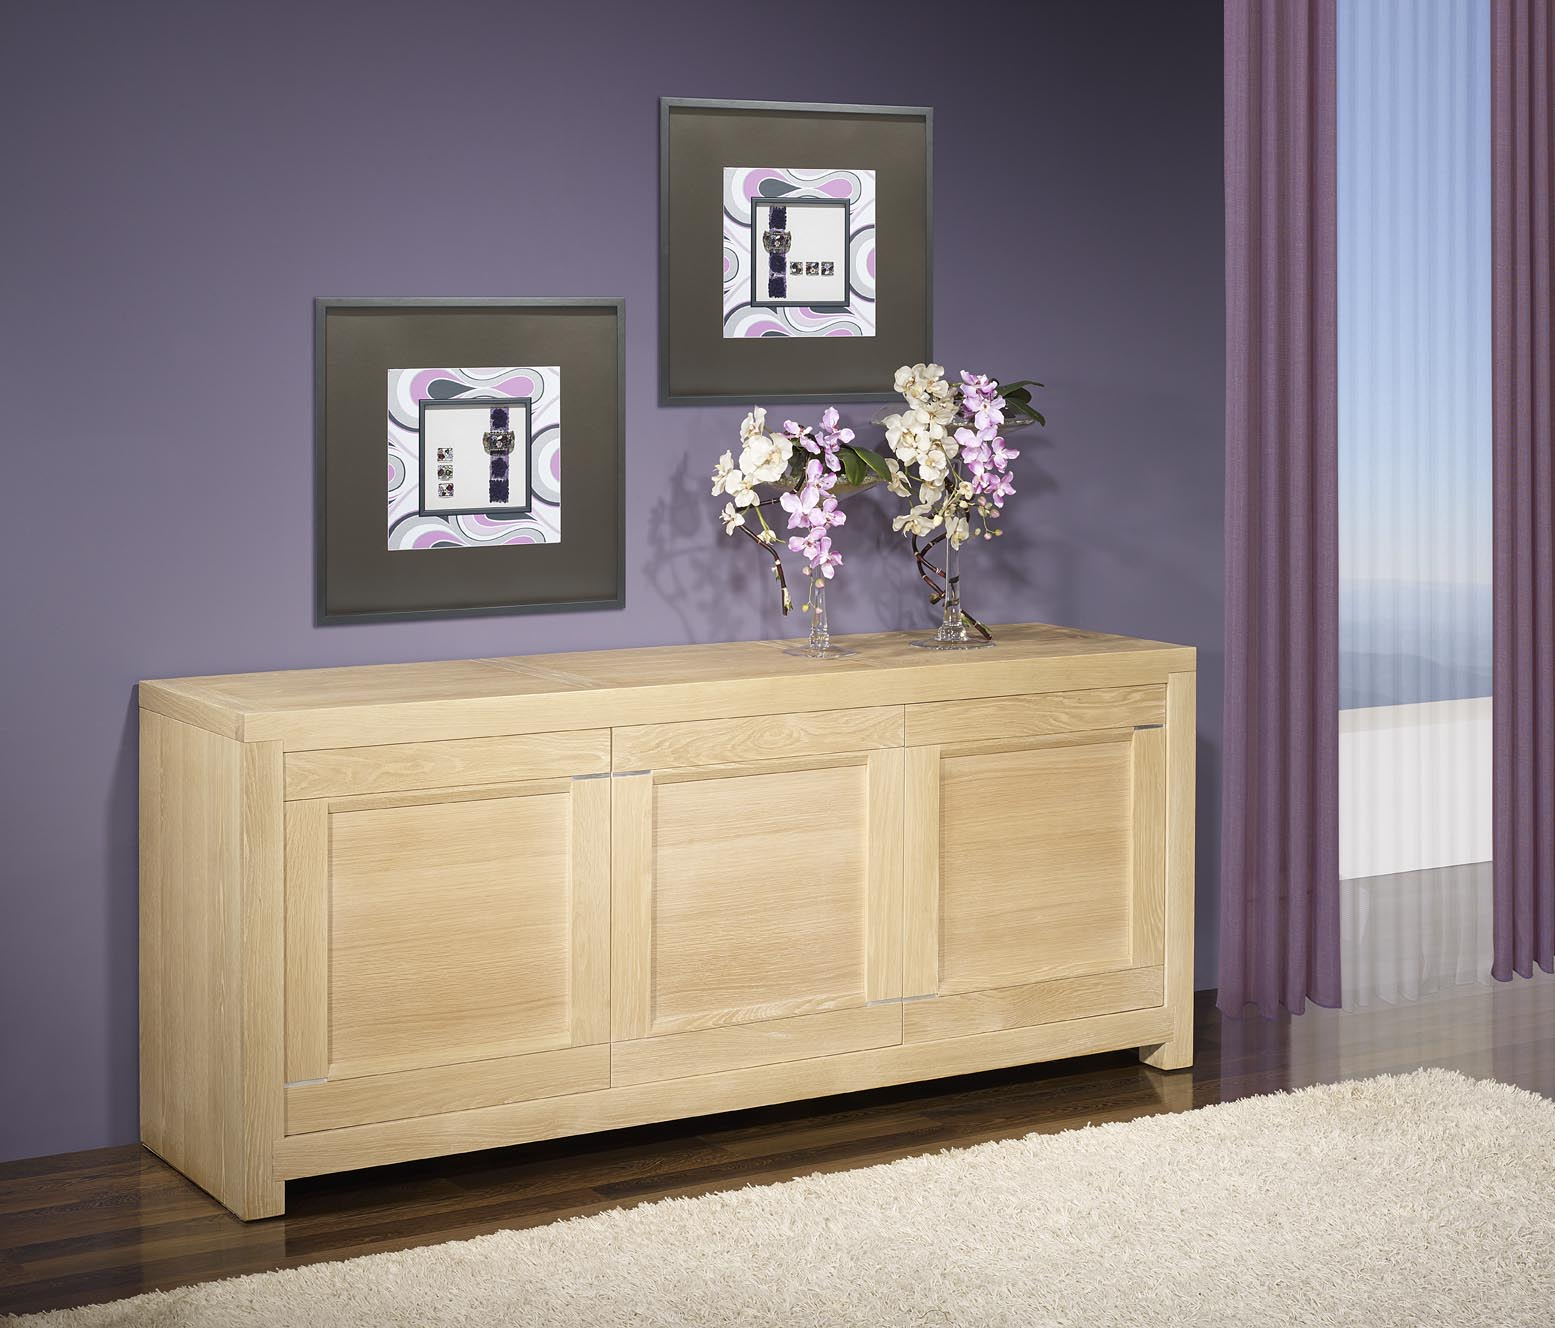 bahut 3 portes loann en ch ne massif de ligne. Black Bedroom Furniture Sets. Home Design Ideas